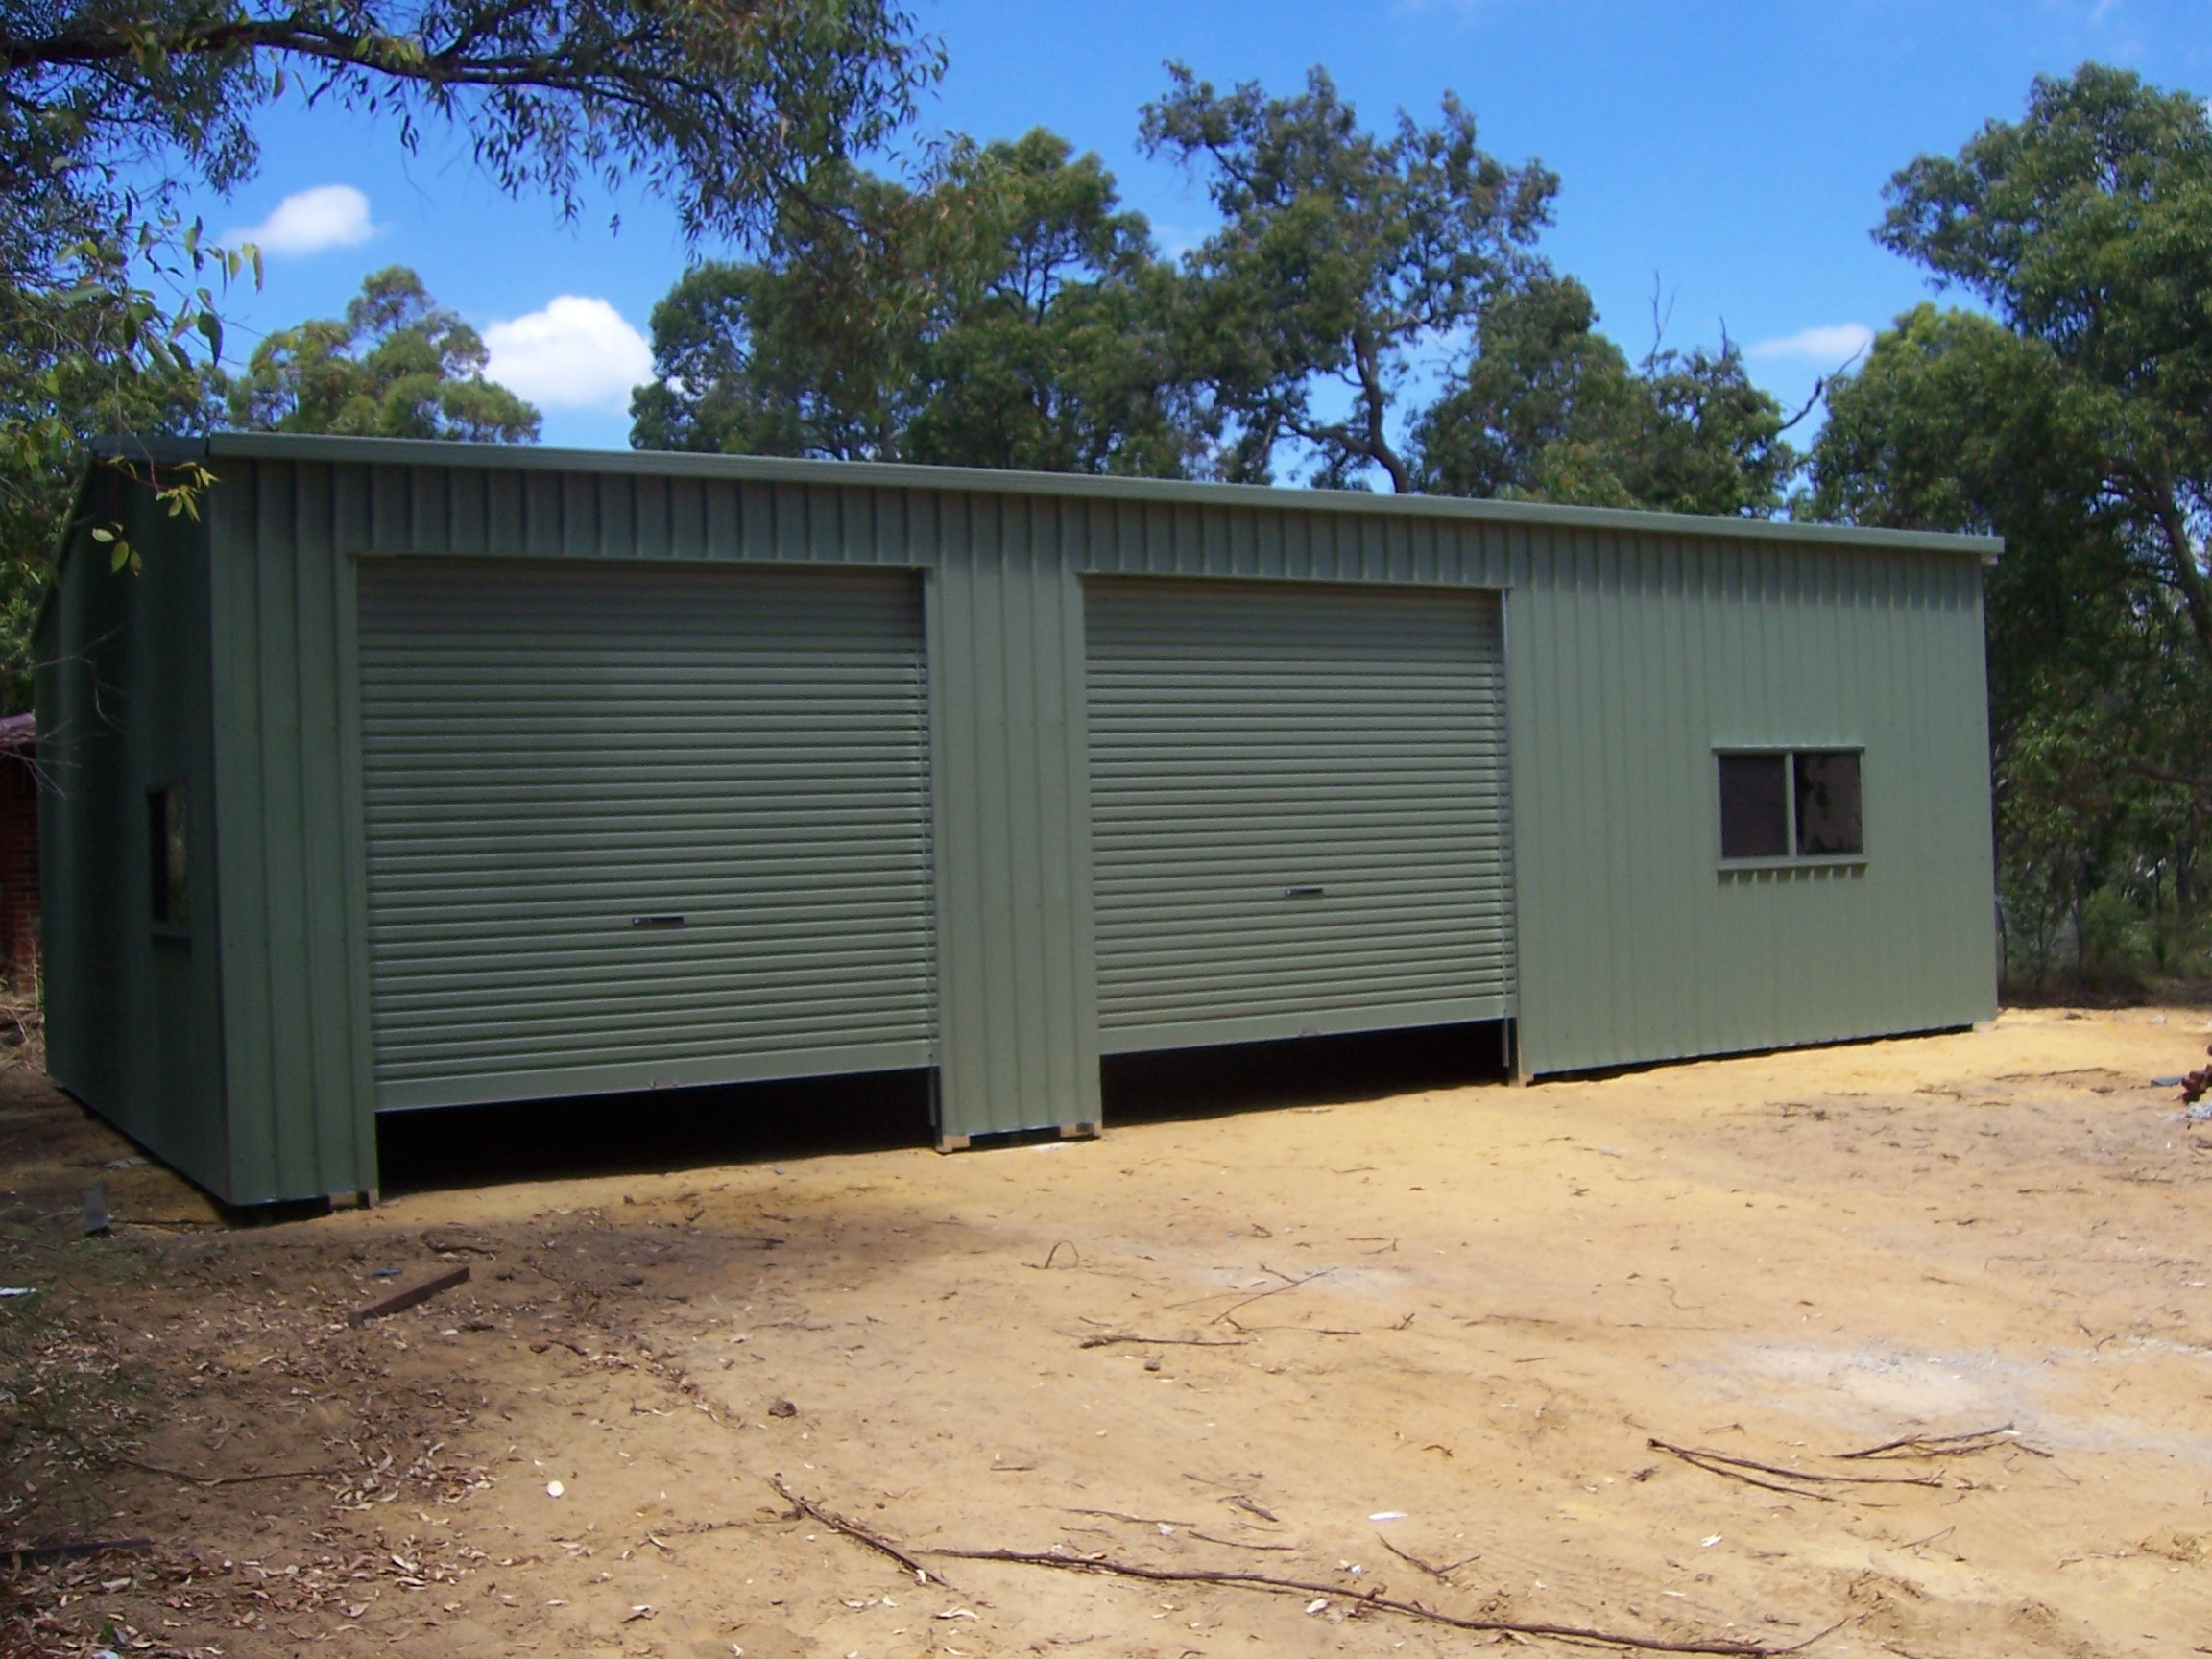 front tas littleballa garage sheds rd with sa vic garages qld nsw steeline all projectsview awning